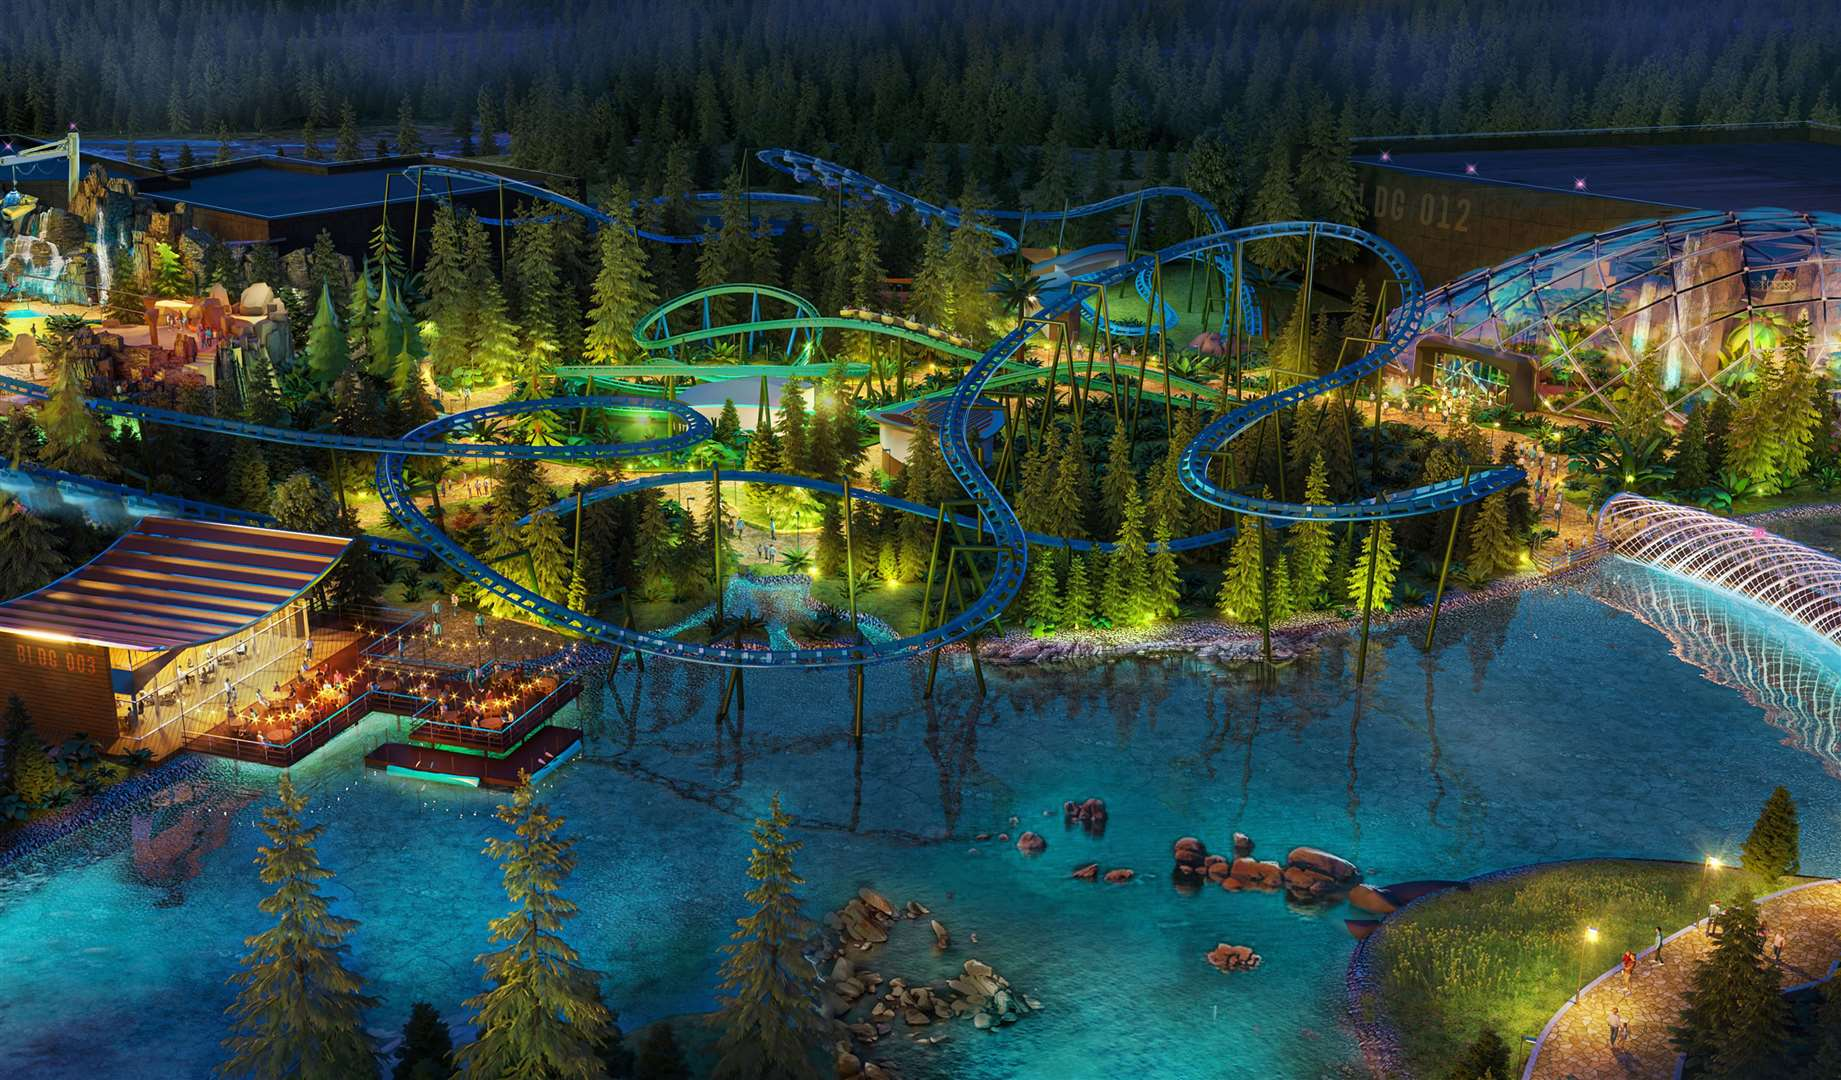 The London Resort will cost £2.5bn to build